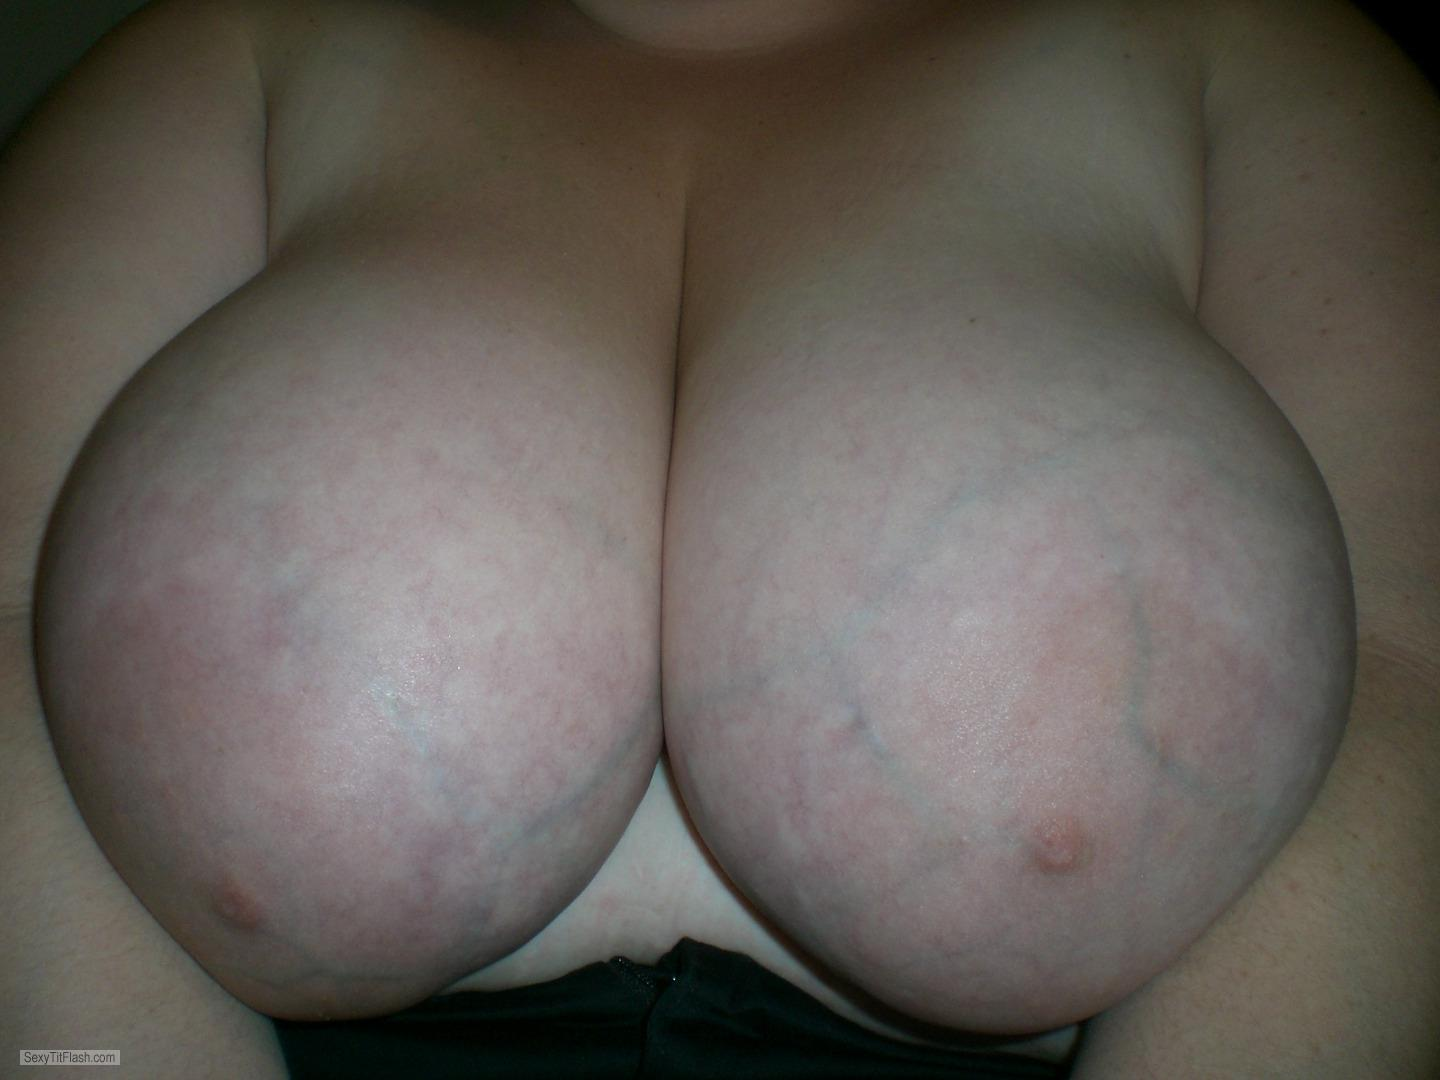 Tit Flash: My Very Big Tits (Selfie) - Banana Valley from United States